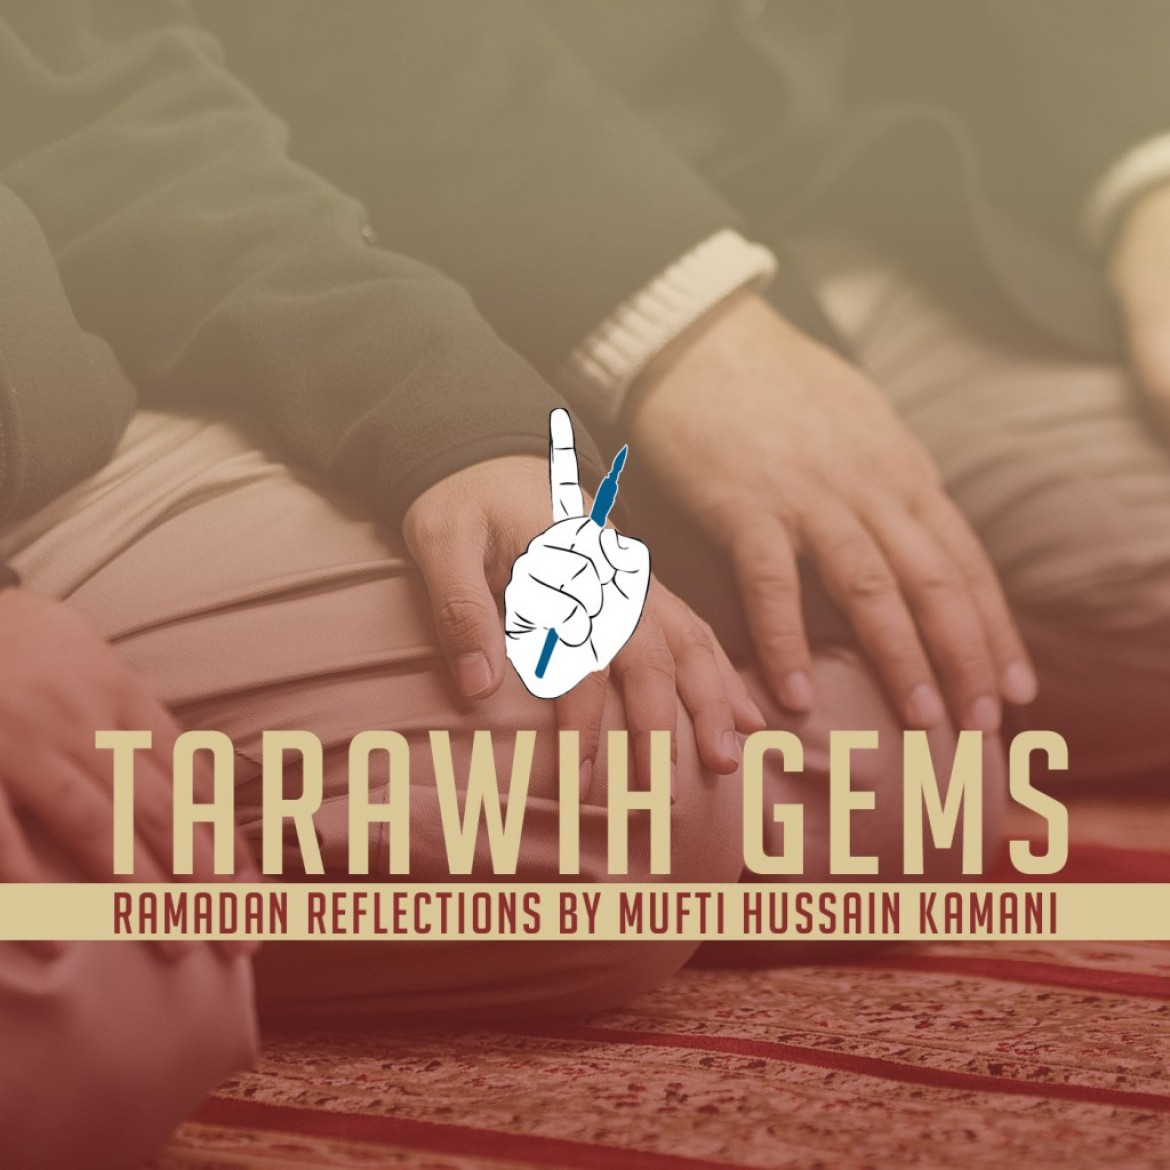 Tarawih Gems – Live and Let Live